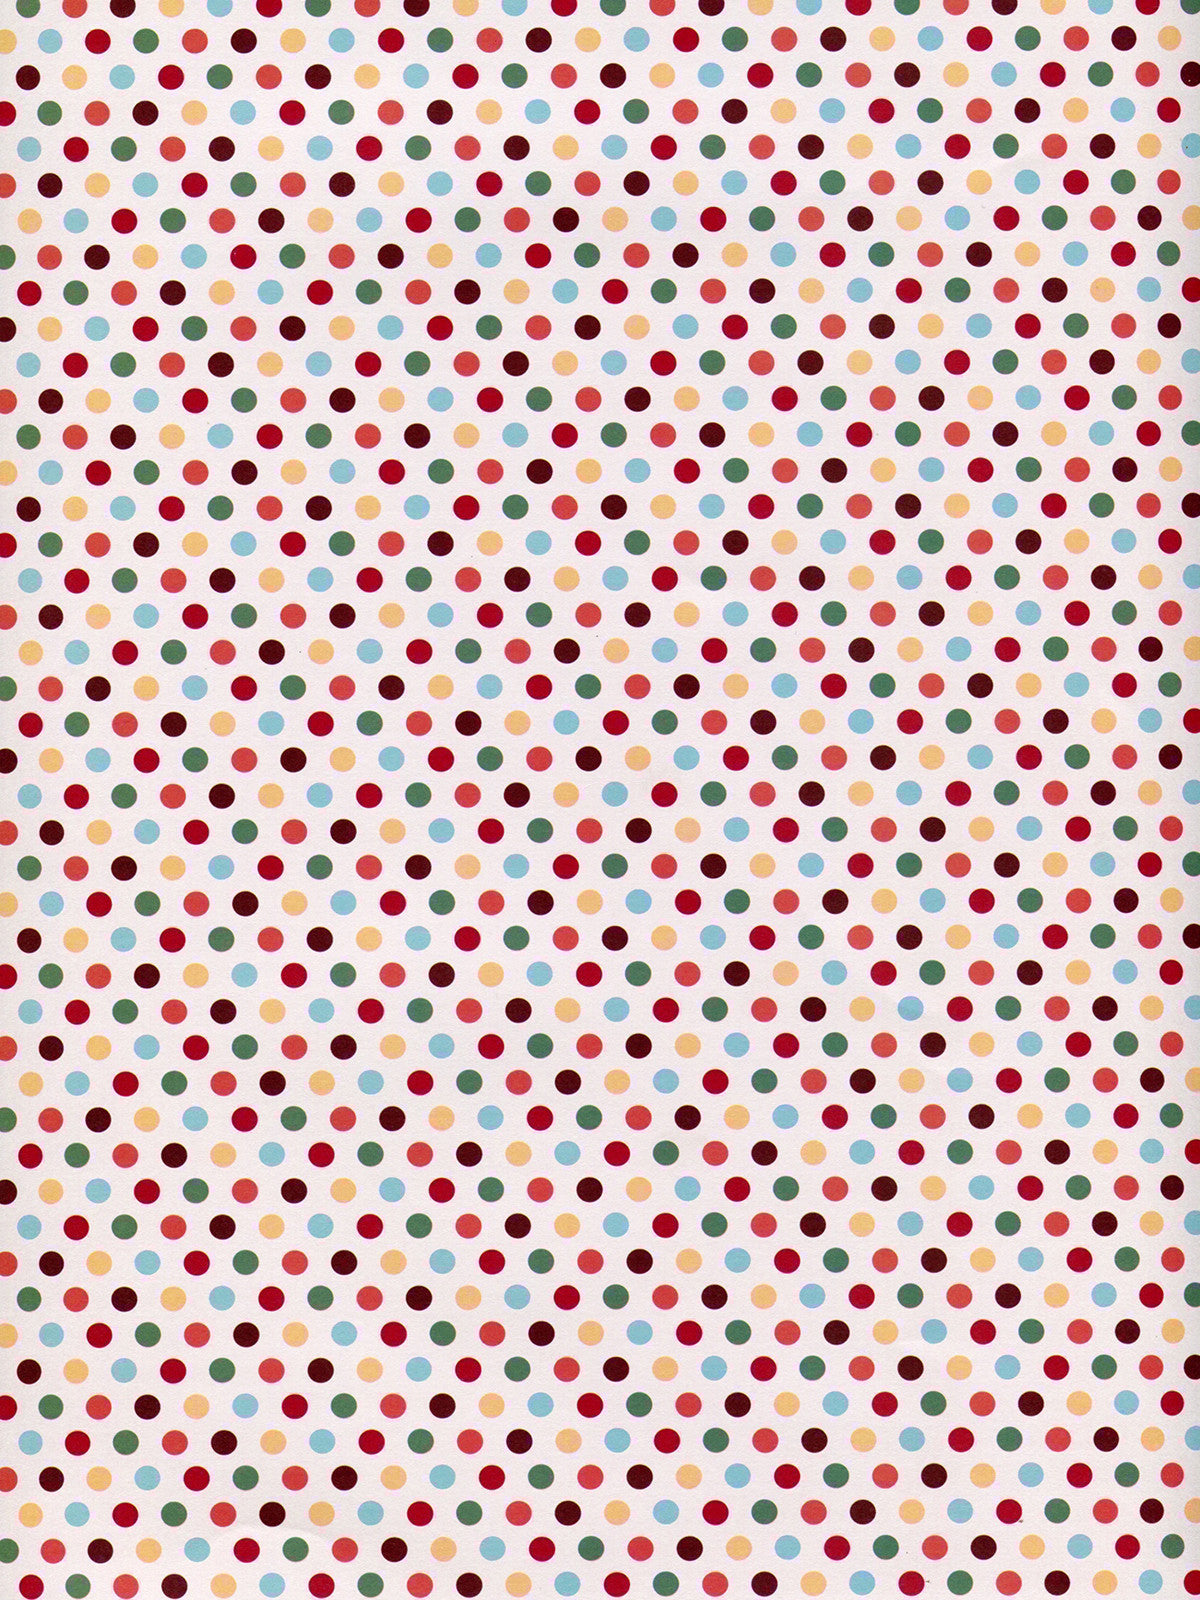 Busy Dots Photography Background / 8033 - DropPlace